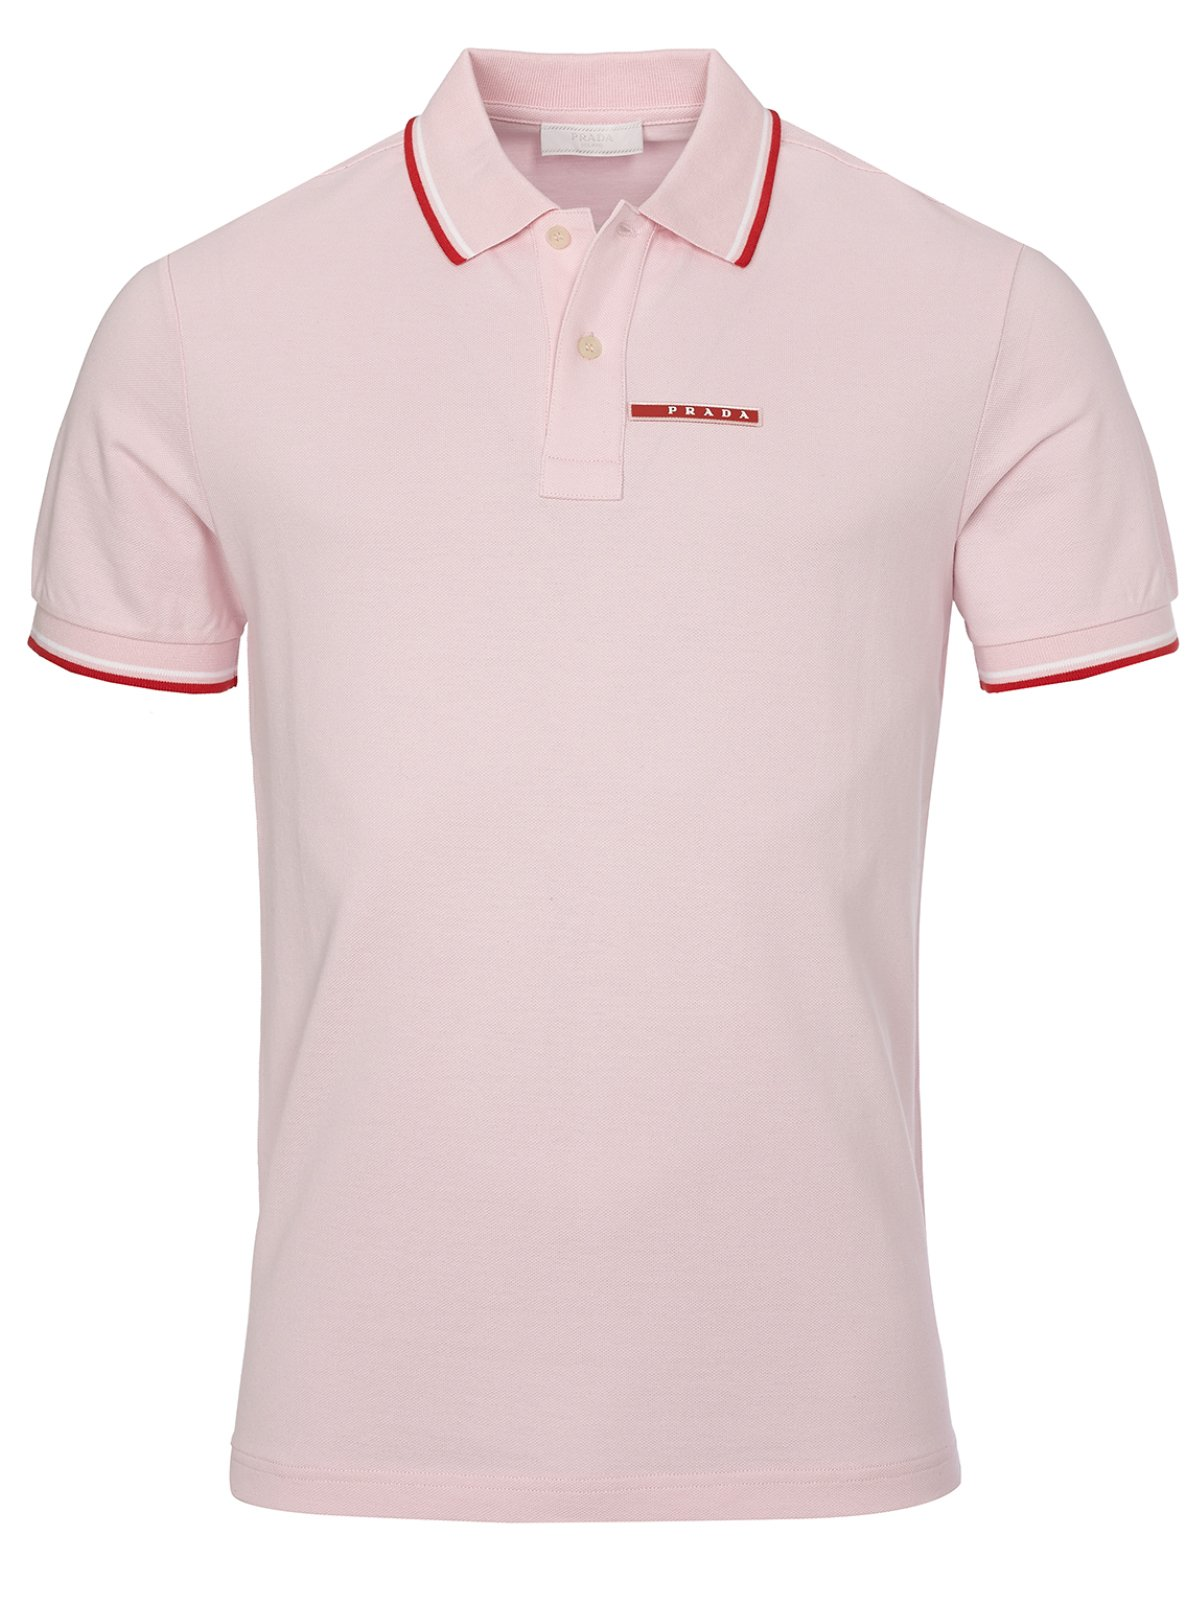 Prada Men's Cotton Piqué Short Sleeve Slim Fit Polo Shirt, Pink SJJ887 (Large)